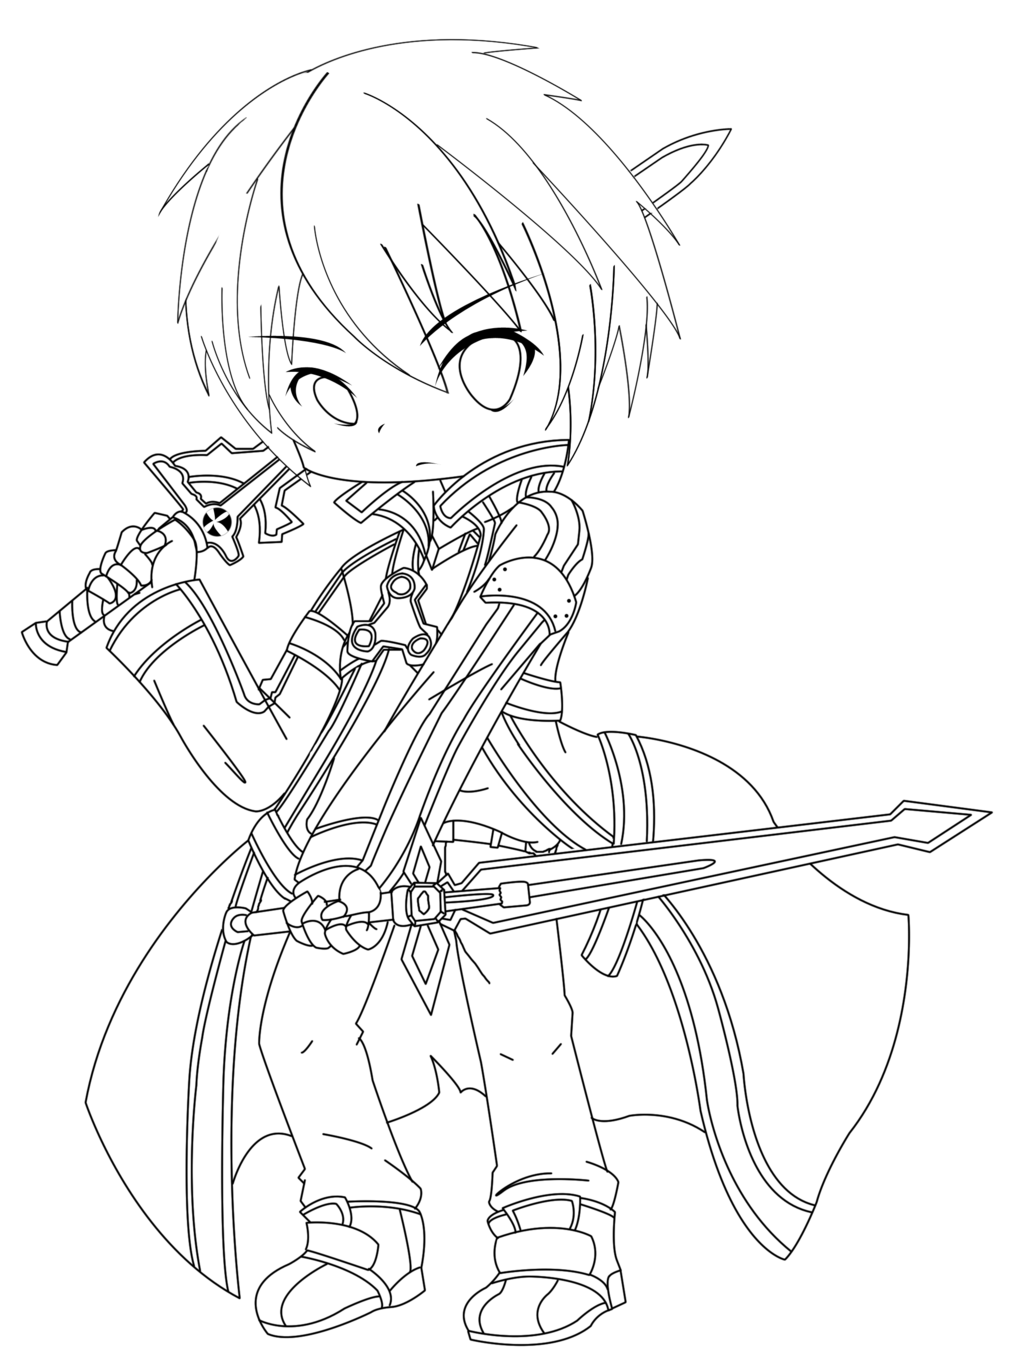 sao coloring pages Kirigaya Kazuto Chibi(Kirito) by AkaruiYuu | LineArt: Sword Art  sao coloring pages